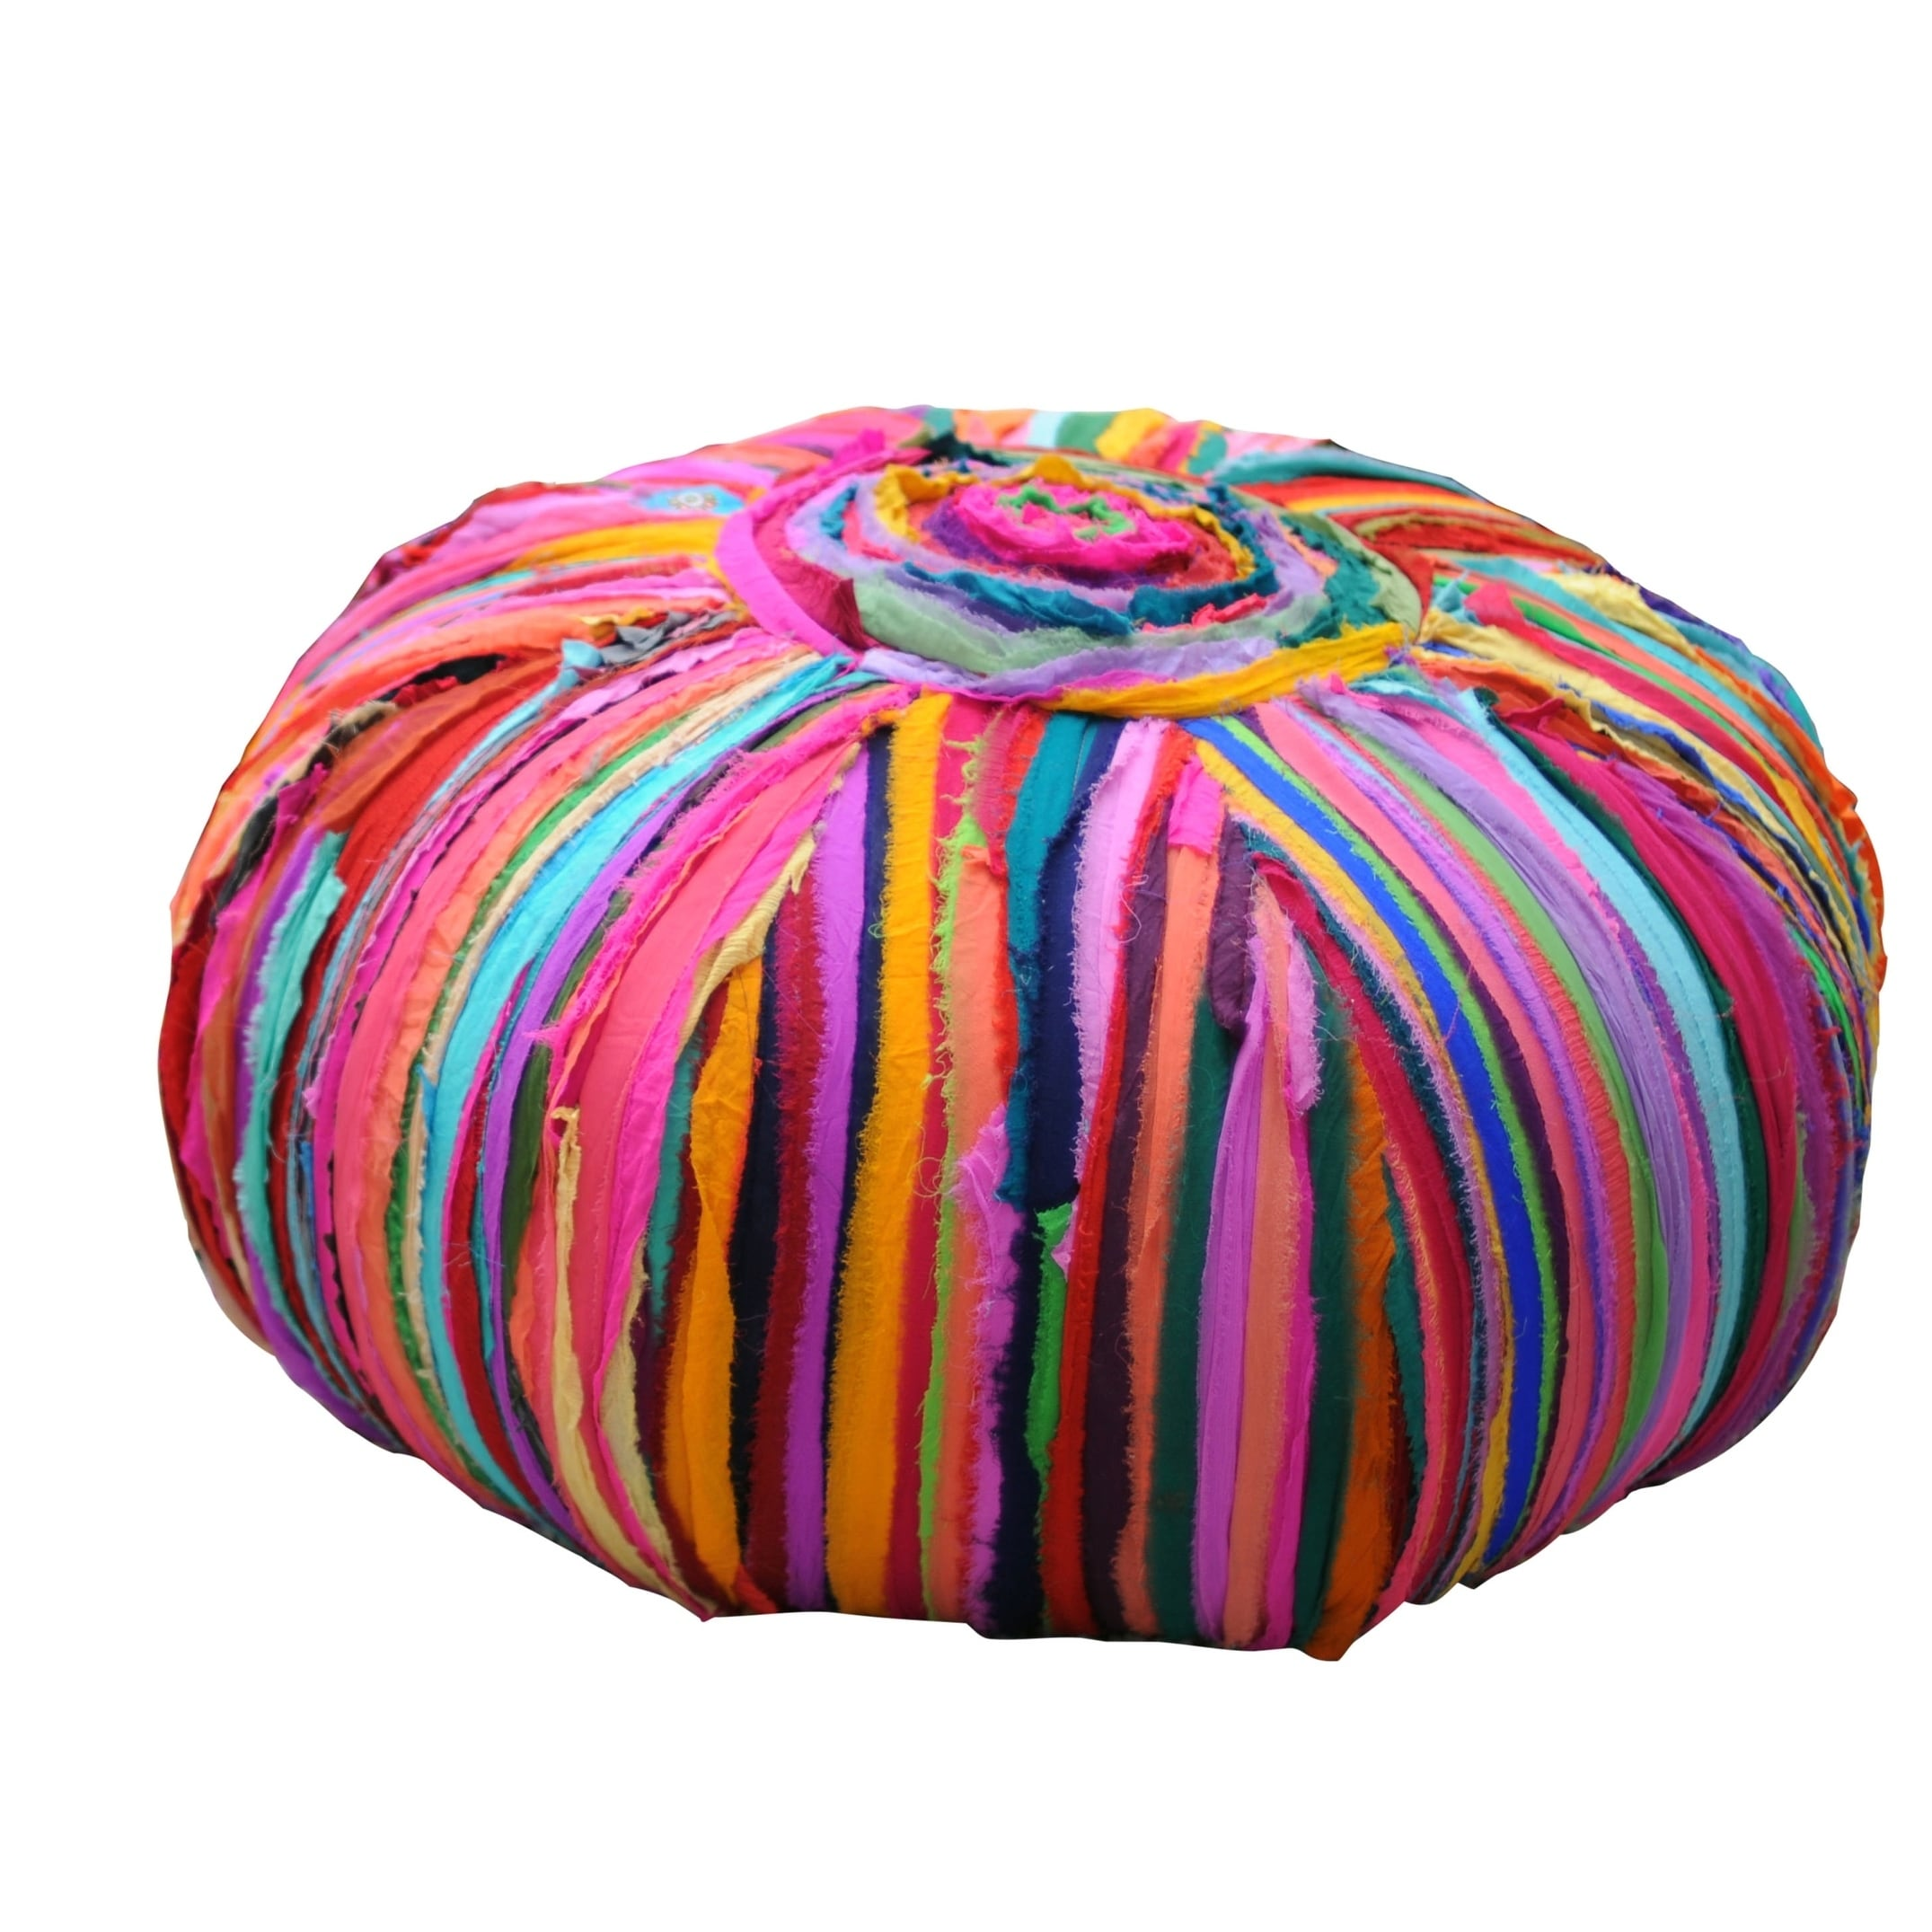 reviews ormsby poof astoria ottoman grand elegant pouf leather